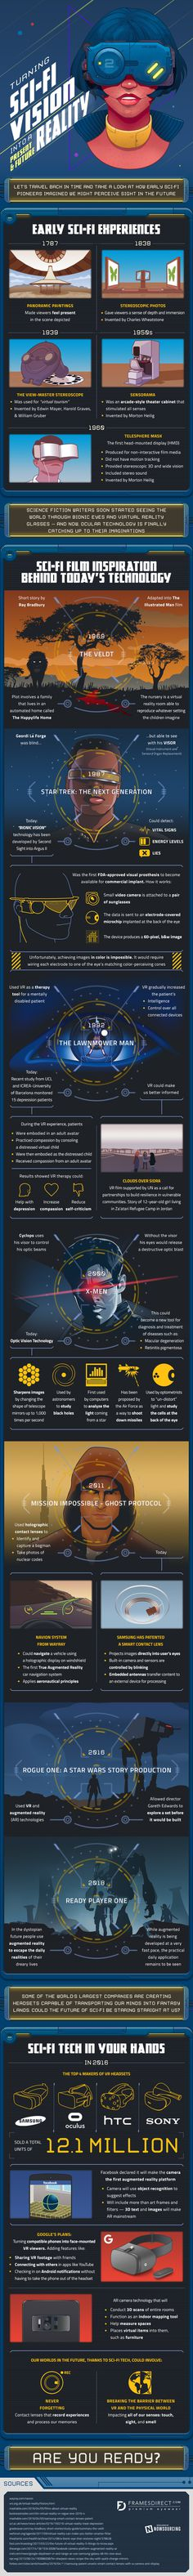 Infographic: Sci-fi Vision